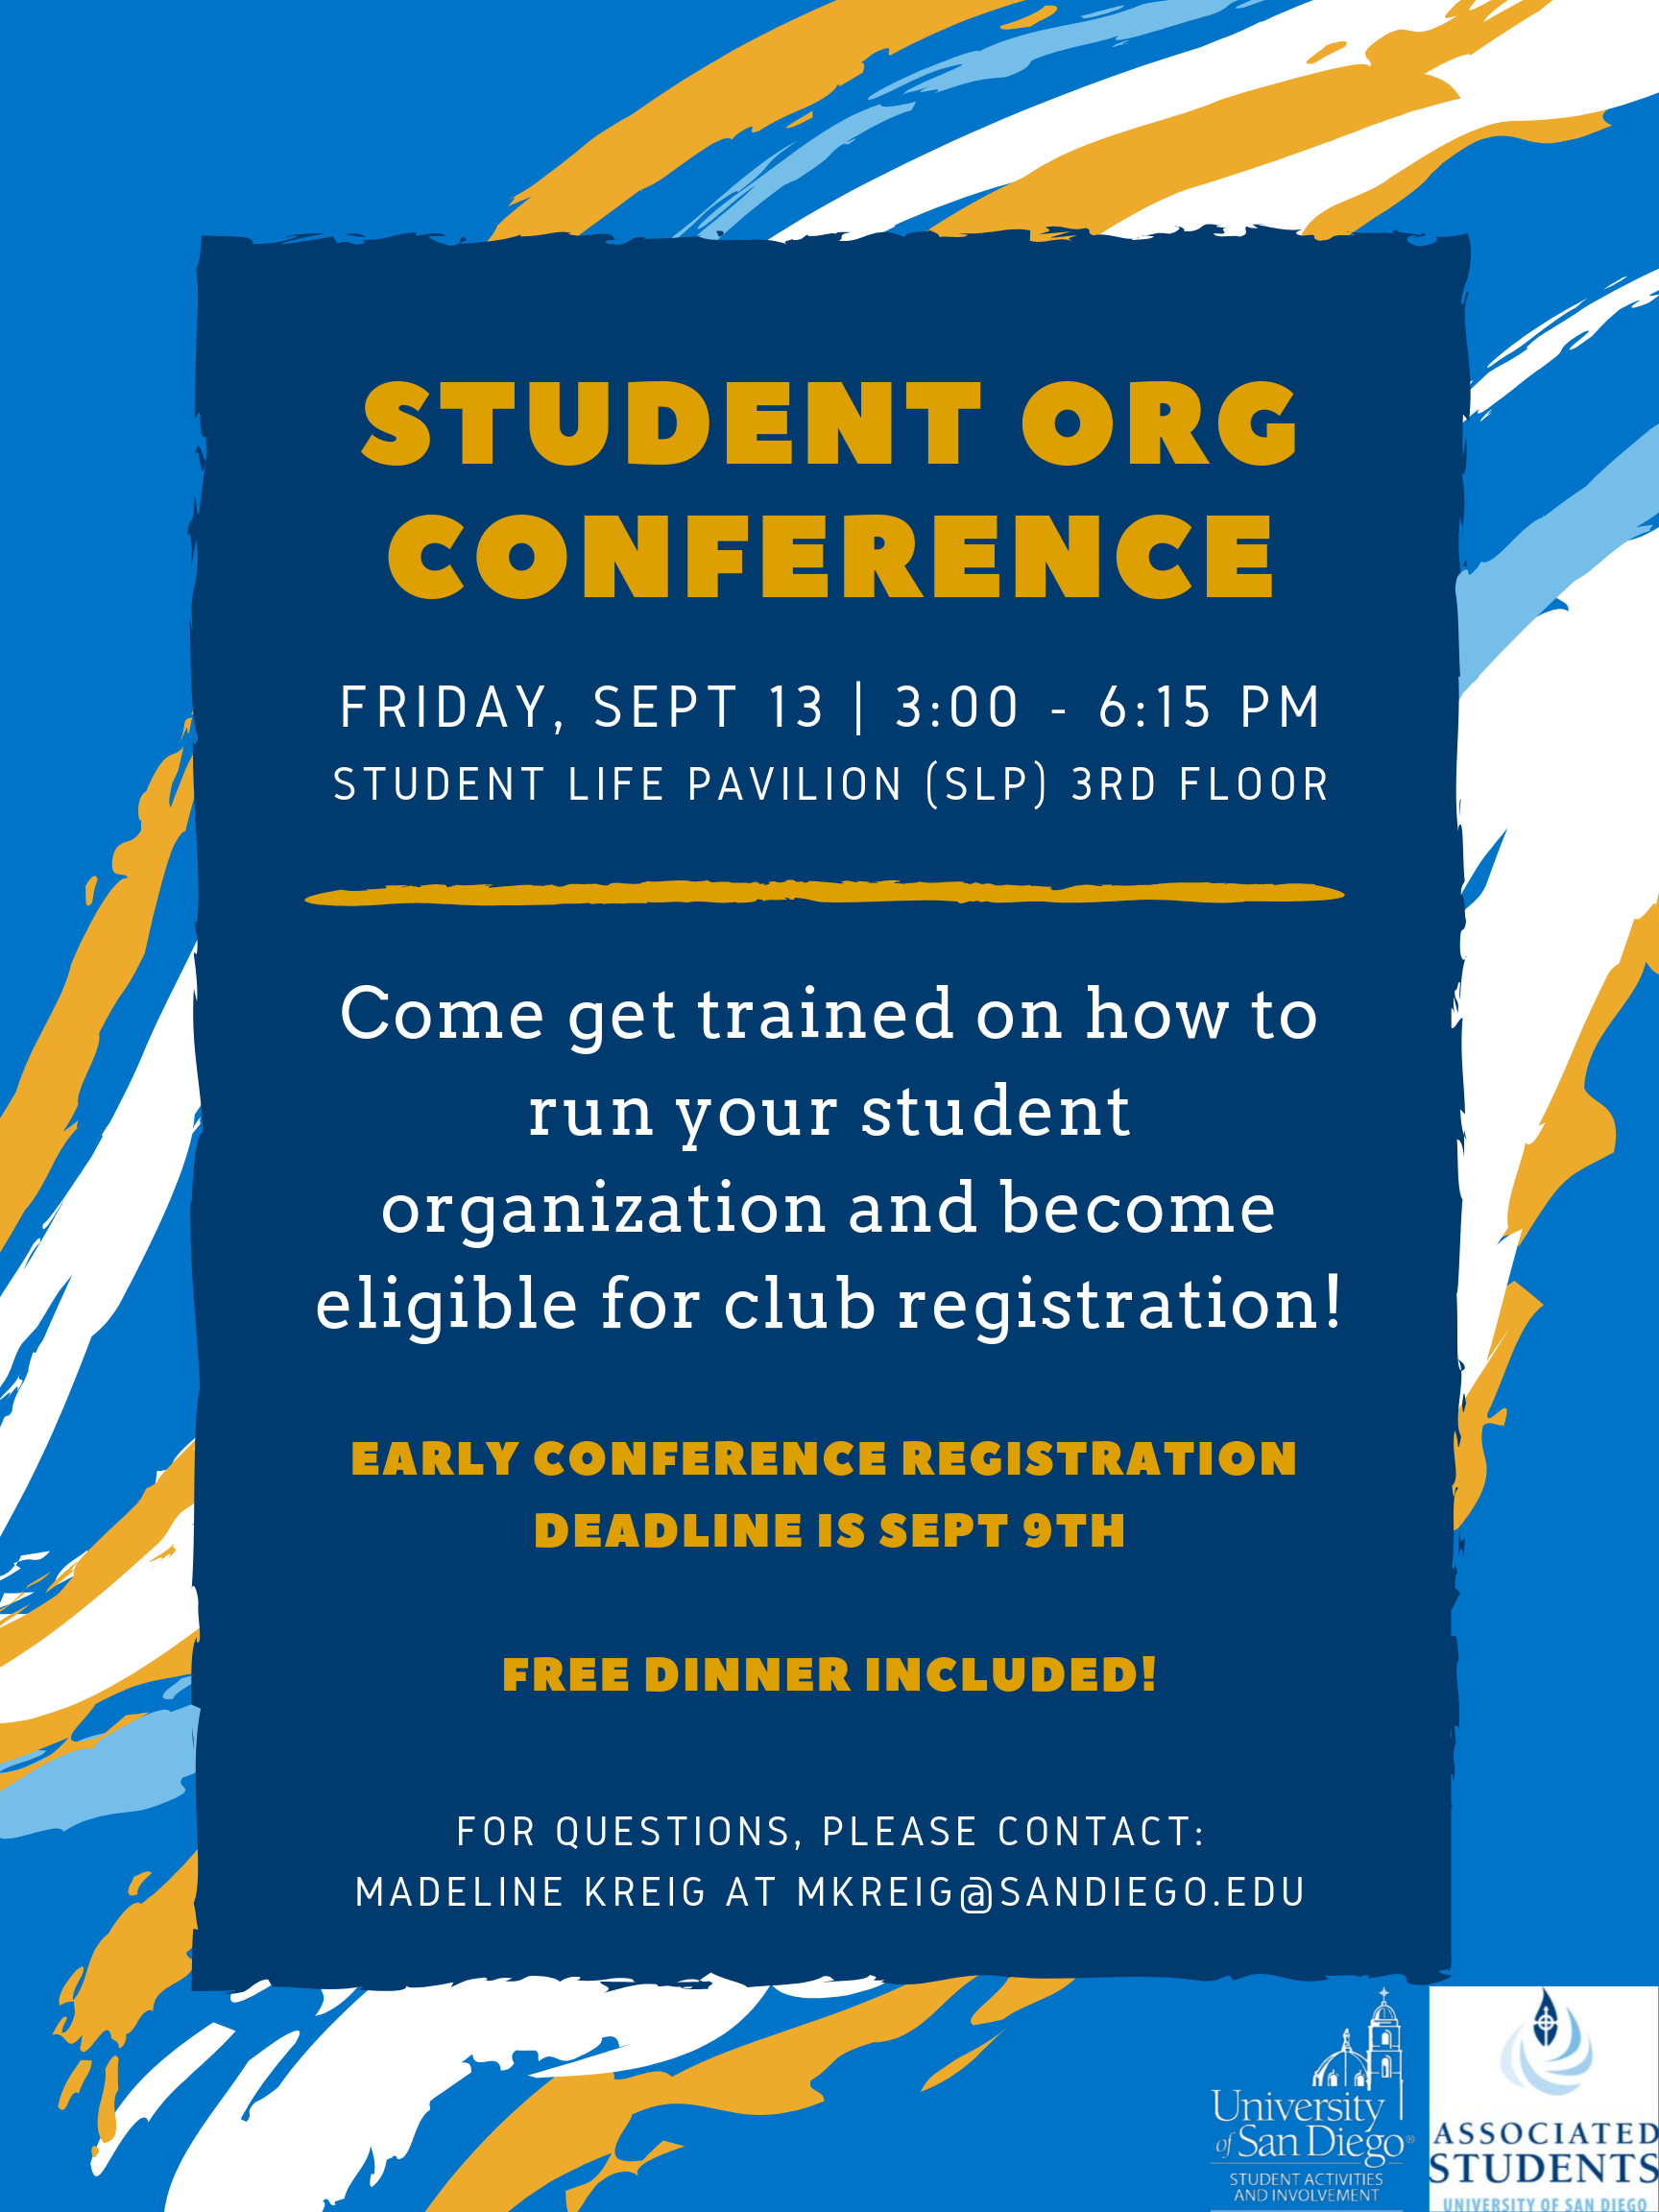 Student org conference, taking place on September 13 from 3:00-6:15 pm in the Student Life Pavilion. Come get trained on how to run your student organization and become eligible for club registration!